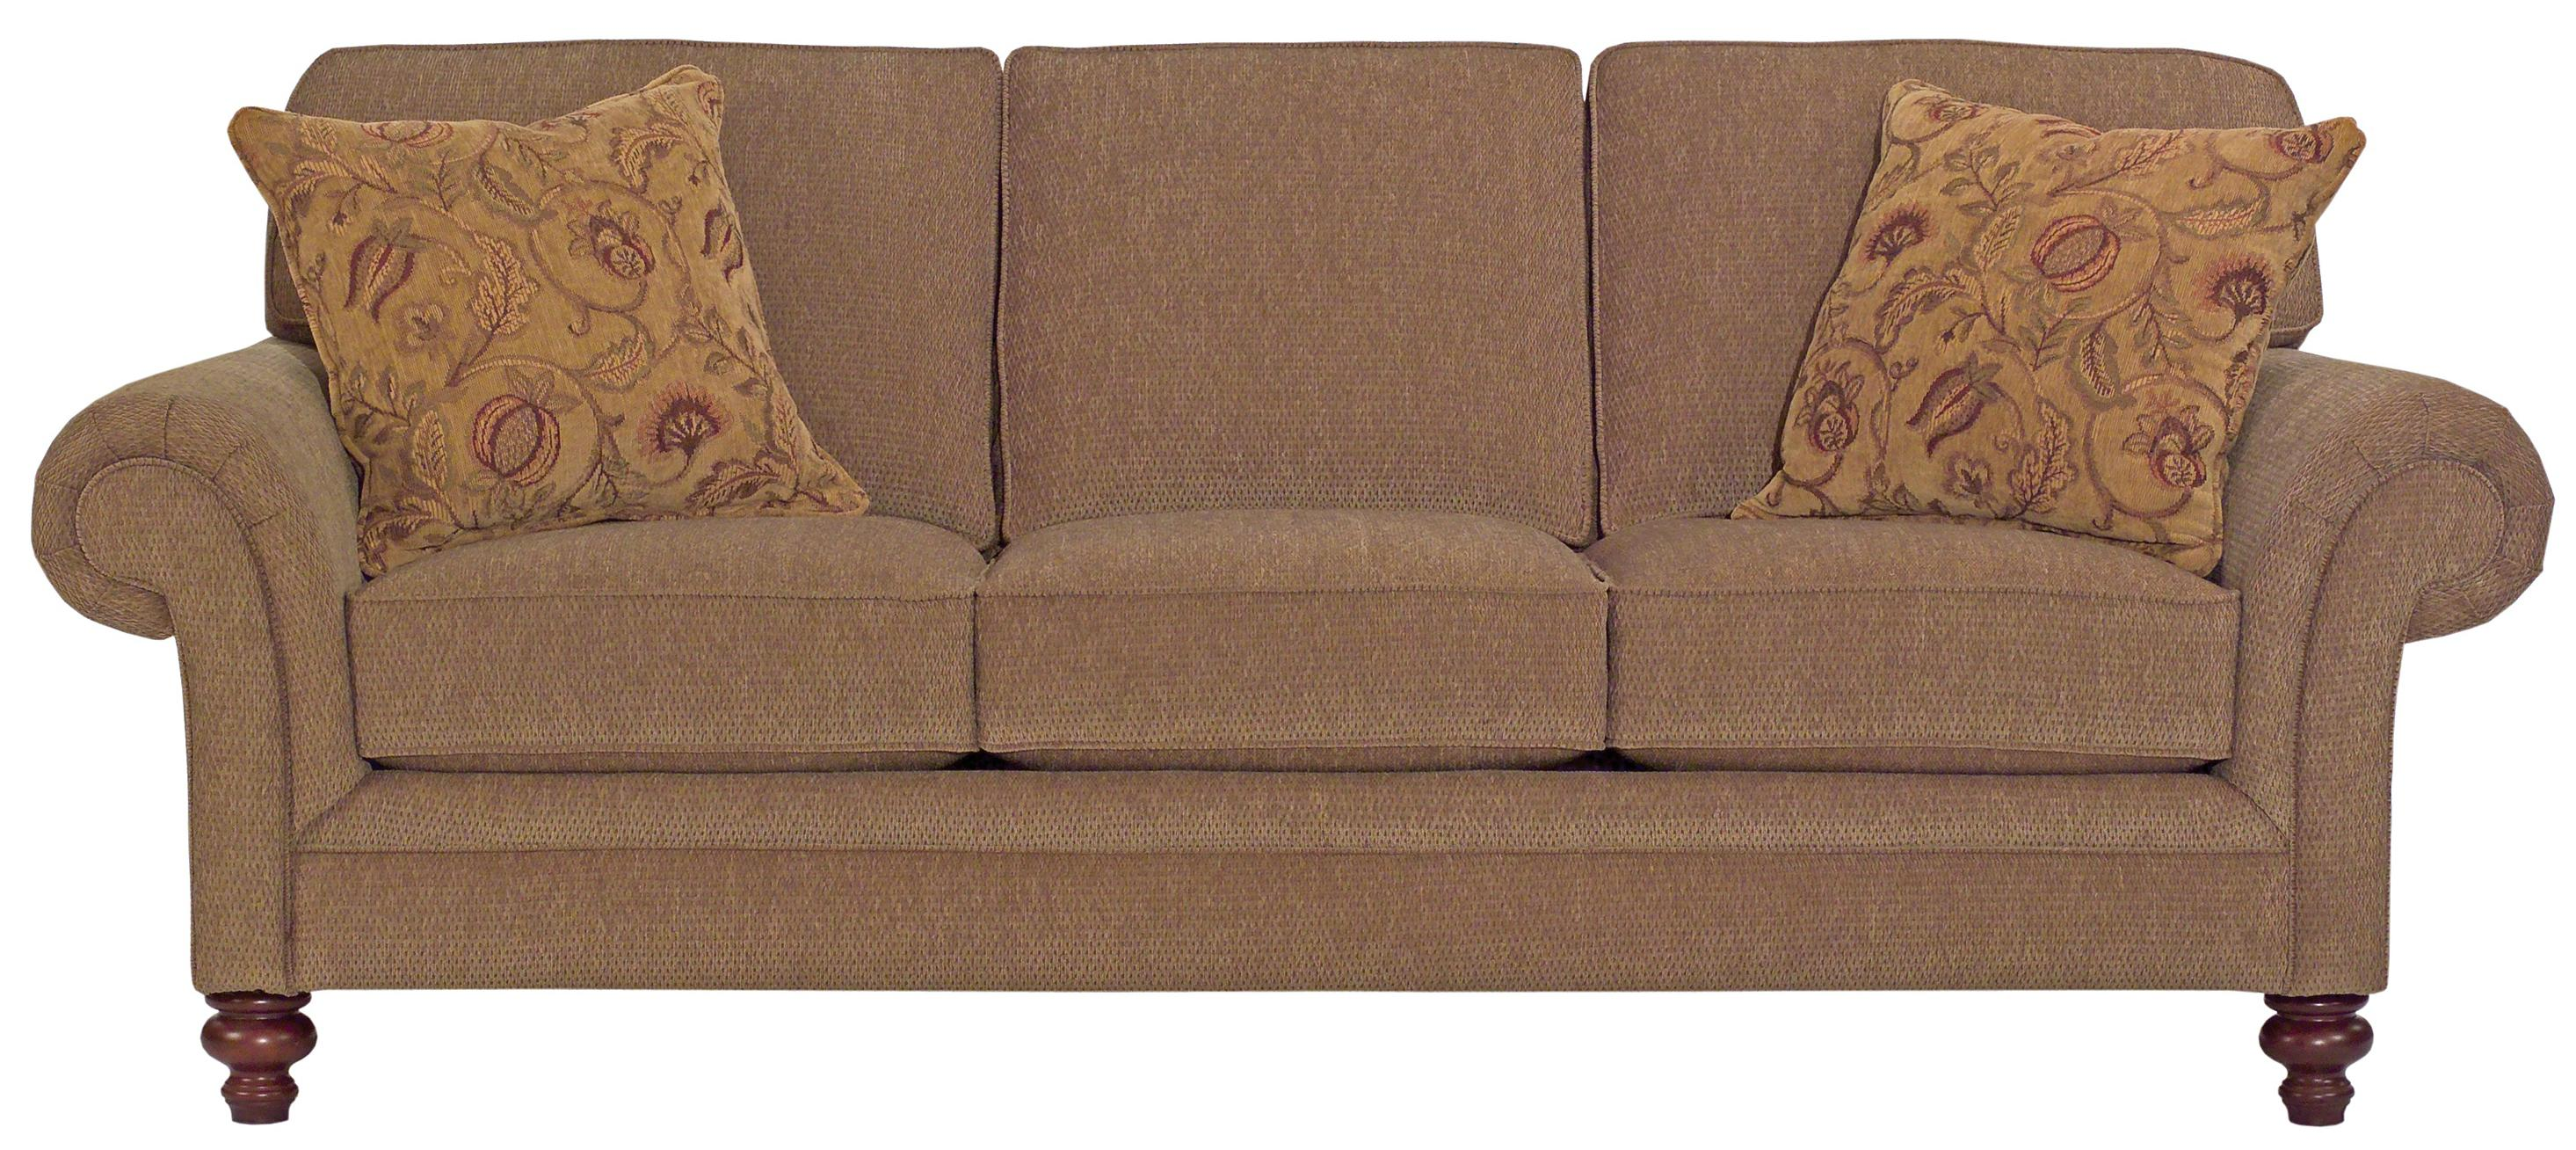 Broyhill Furniture Larissa Queen Sleeper - Item Number: 6112-7